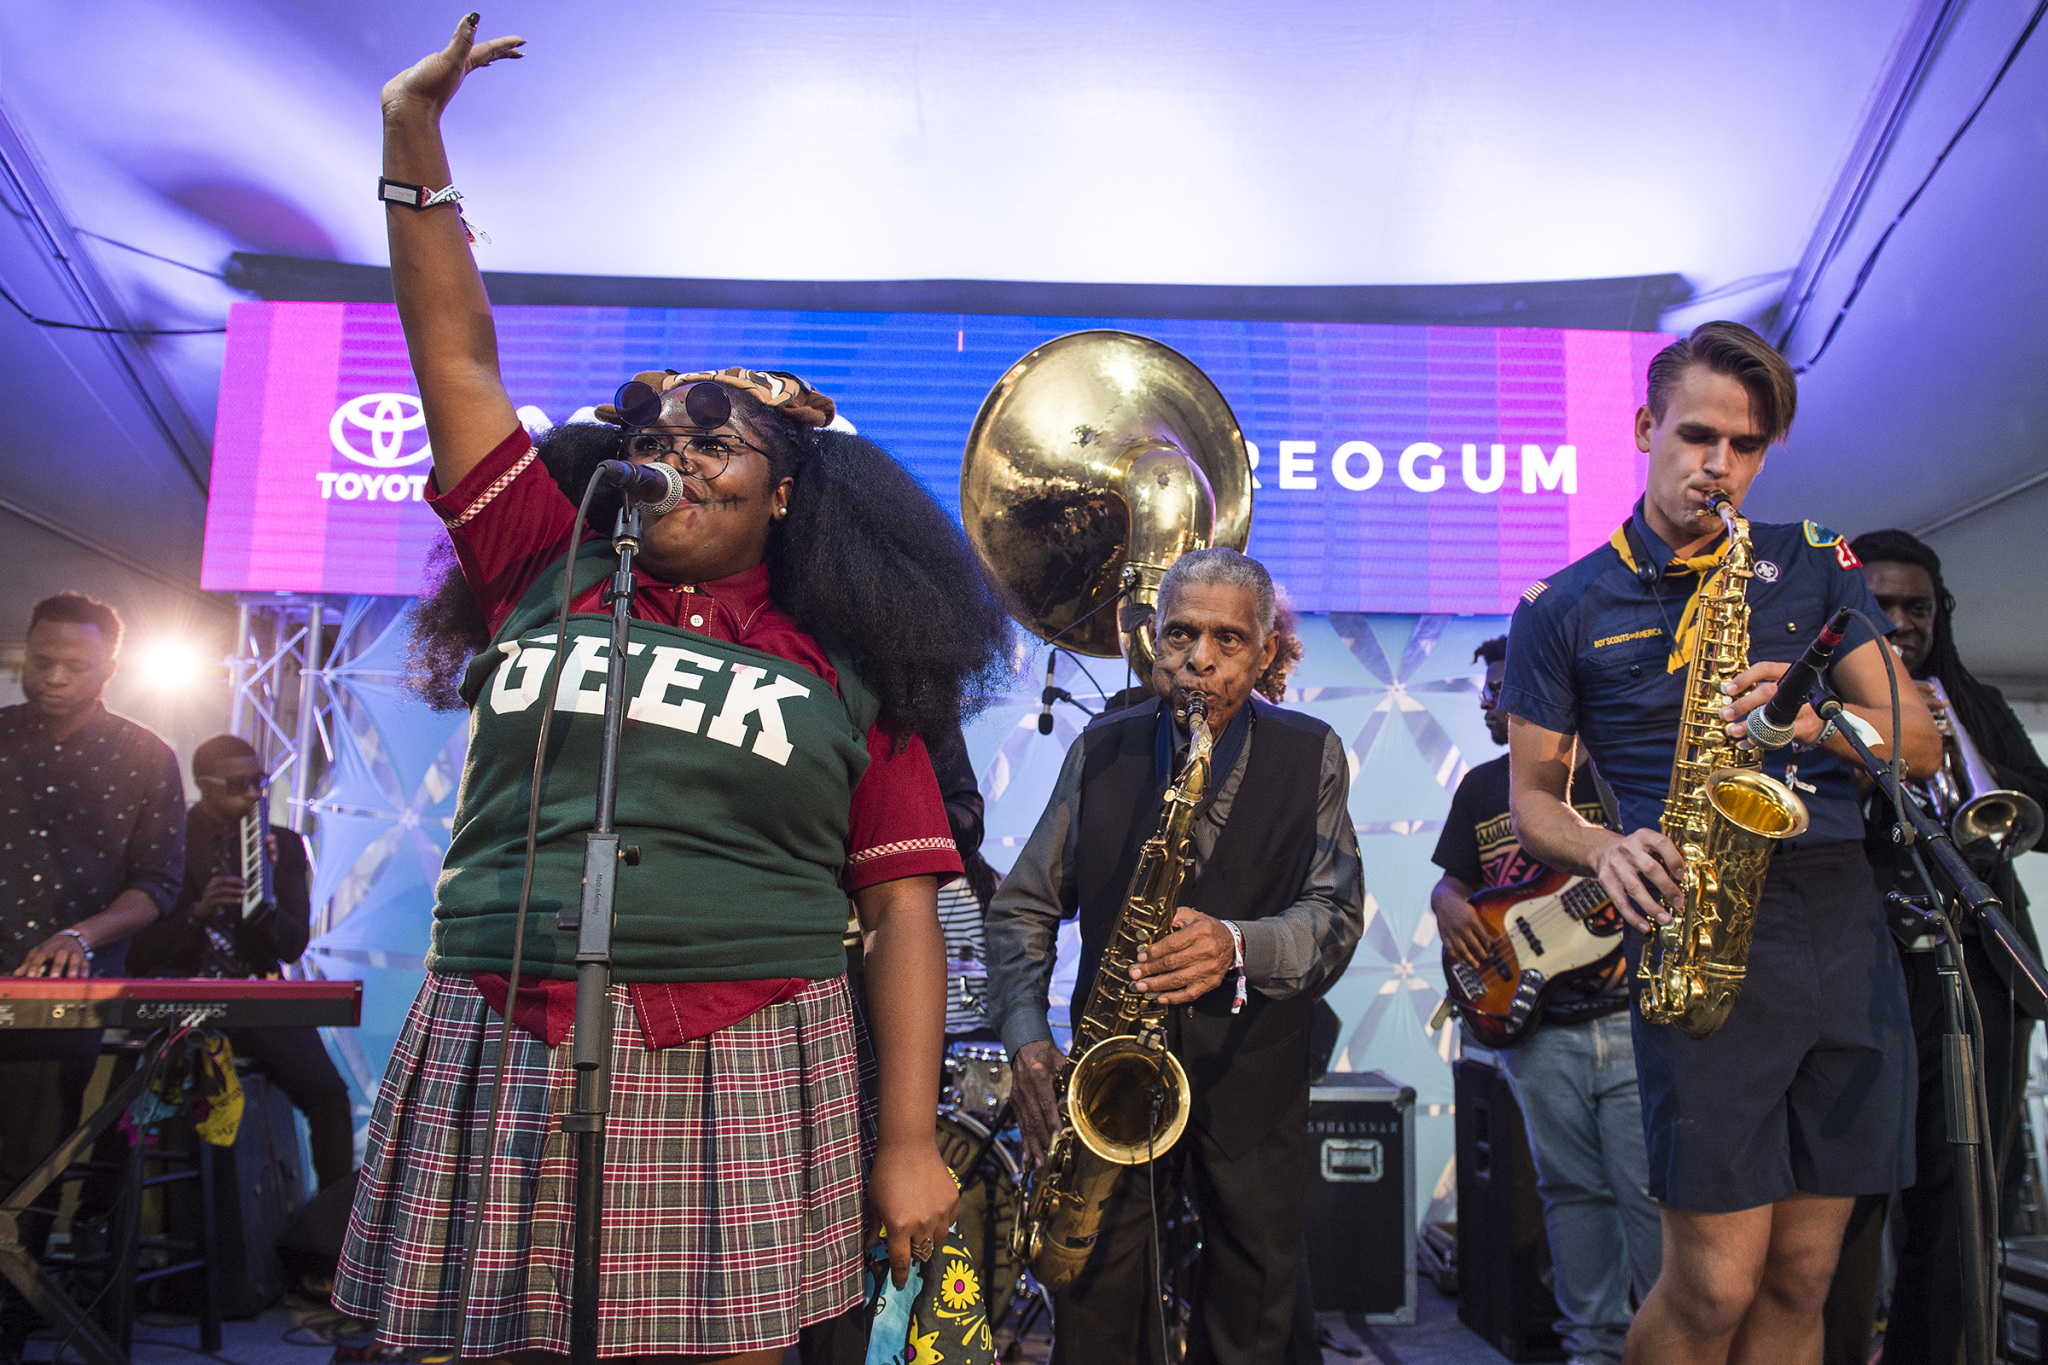 Tank and the Bangas perform with the Jazz Hall Preservation Band to close out the Voodoo Music + Arts Experience in the Toyota Music Den on Sunday, Oct. 30, 2016.